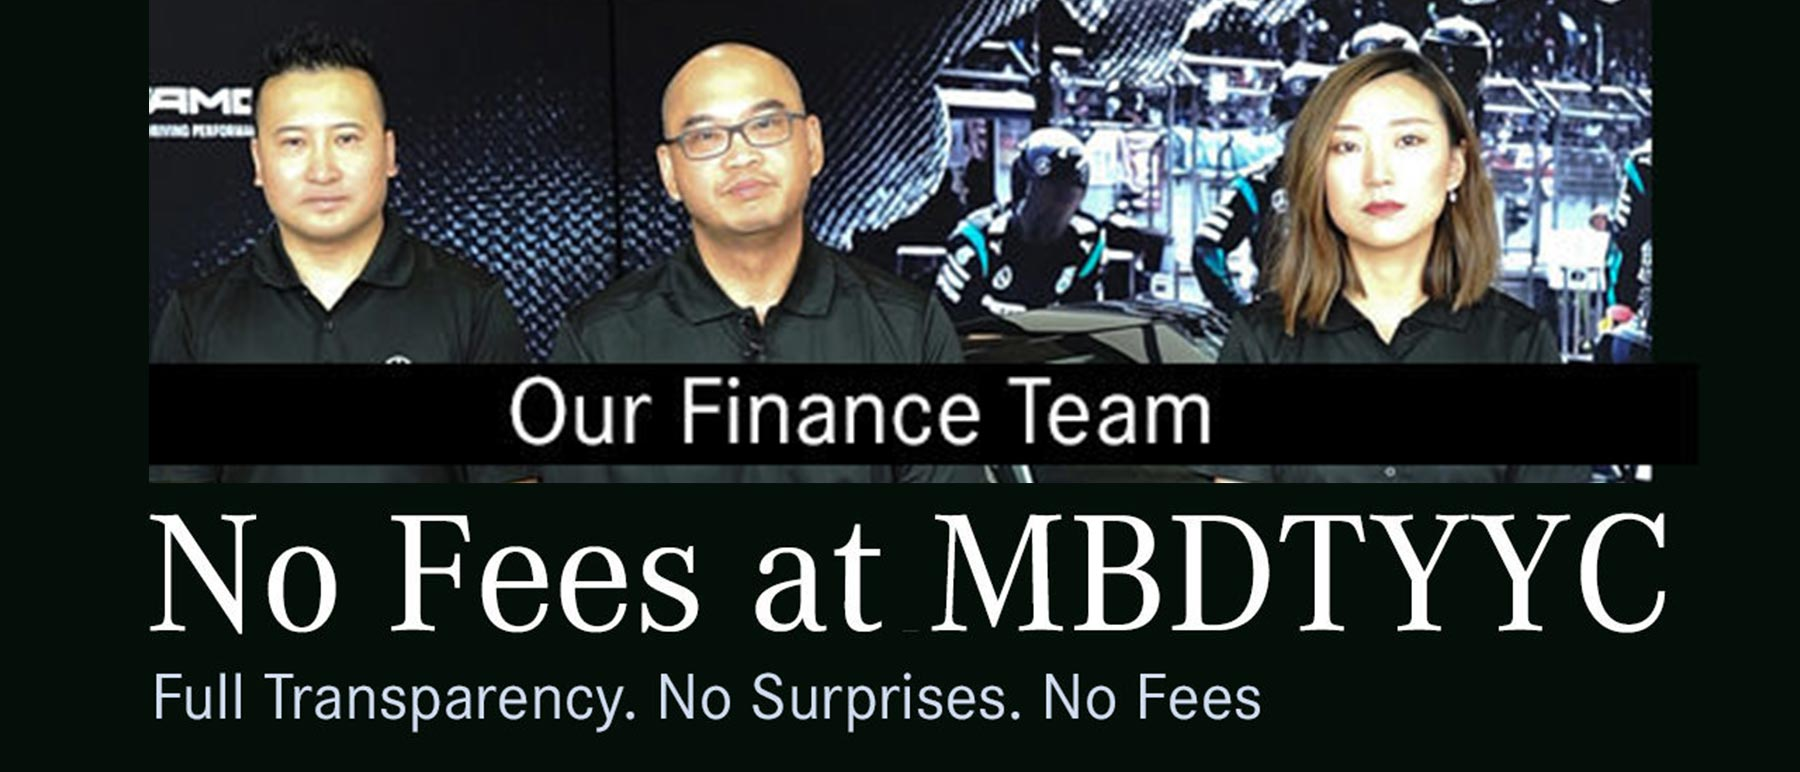 "Mercedes-Benz Downtown Calgary finance team with text: ""No Fees at MBDTYCC, Full Transparency. No Surprises. No Fees."""